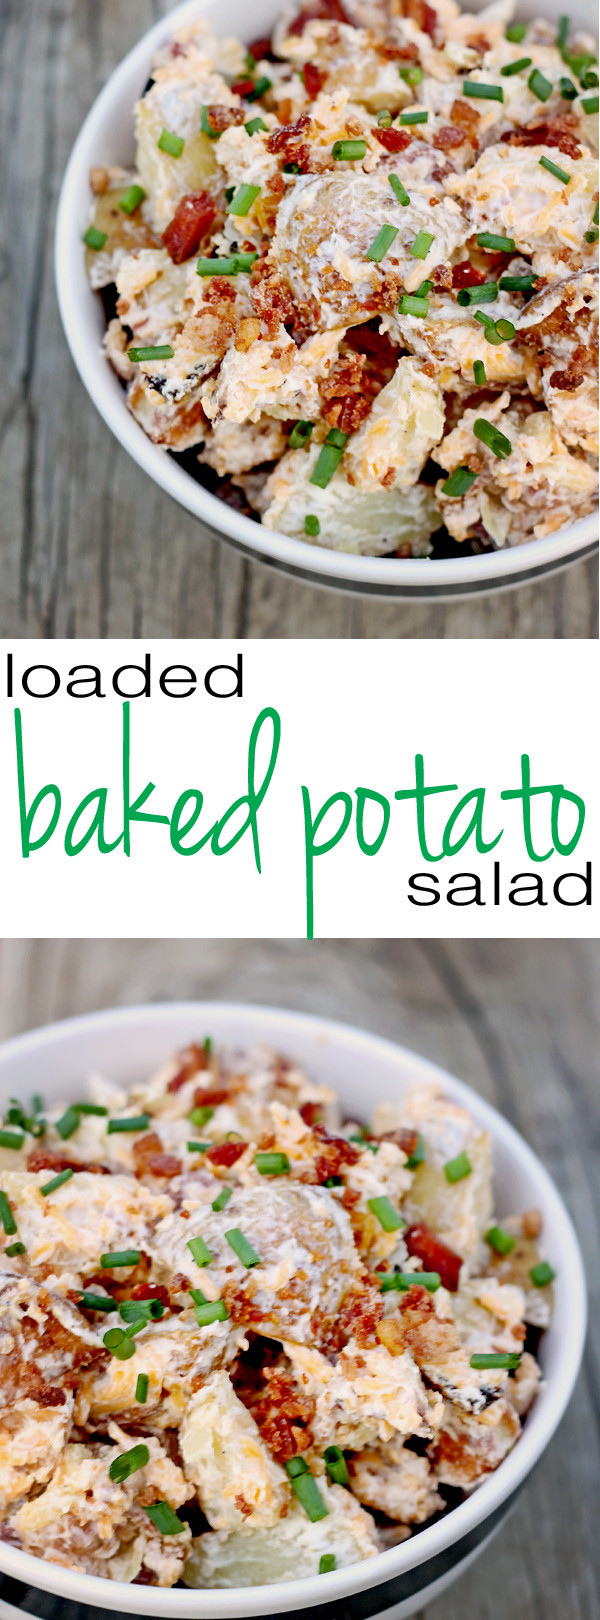 Loaded Baked Potato Salad  Loaded Baked Potato Salad